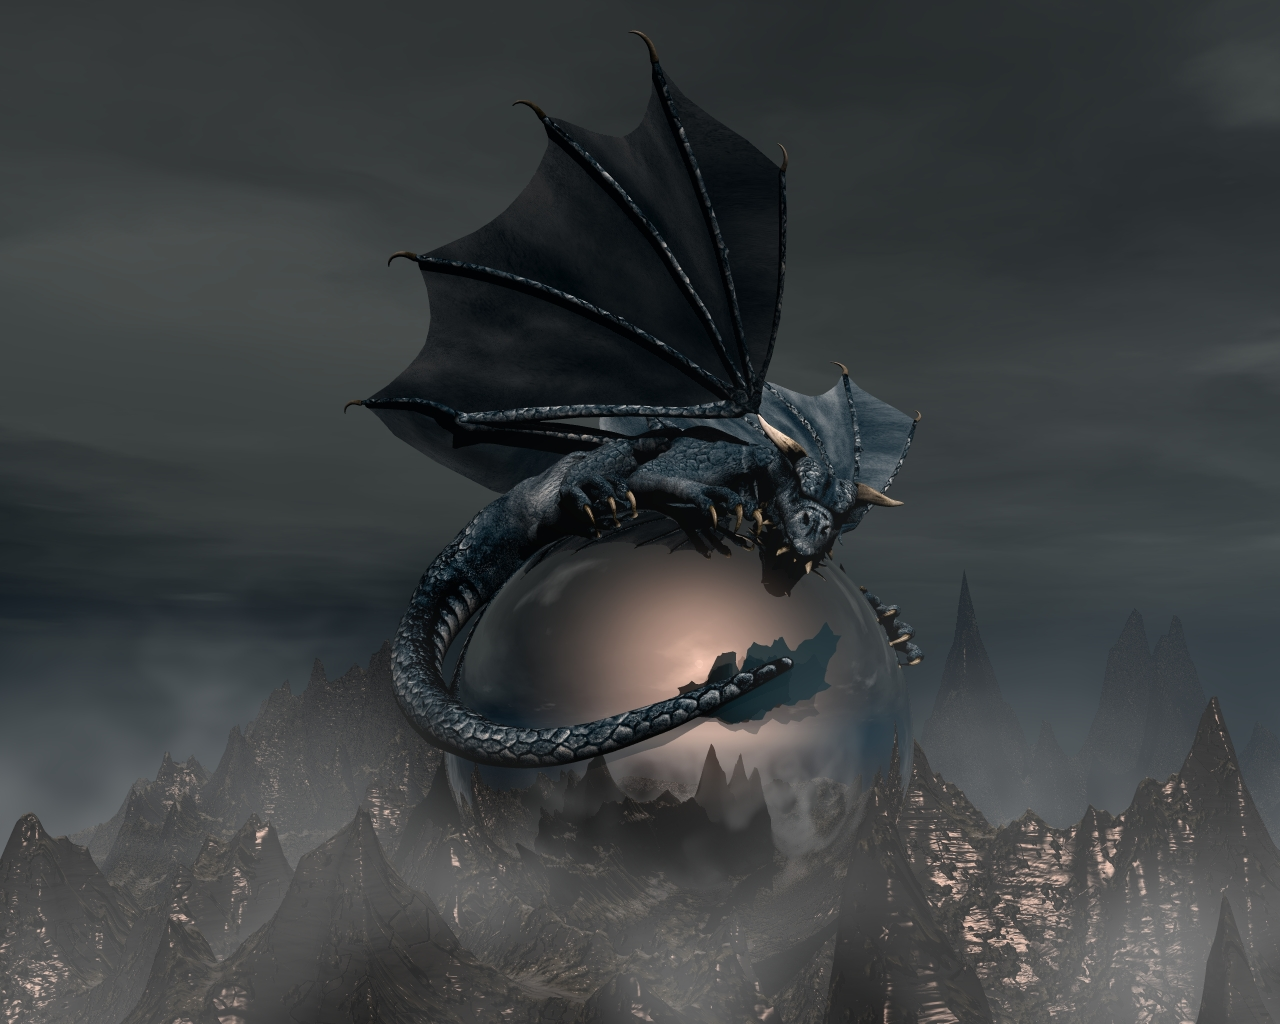 3d dragon wallpaper wallpapersafari - 3d fantasy wallpaper ...